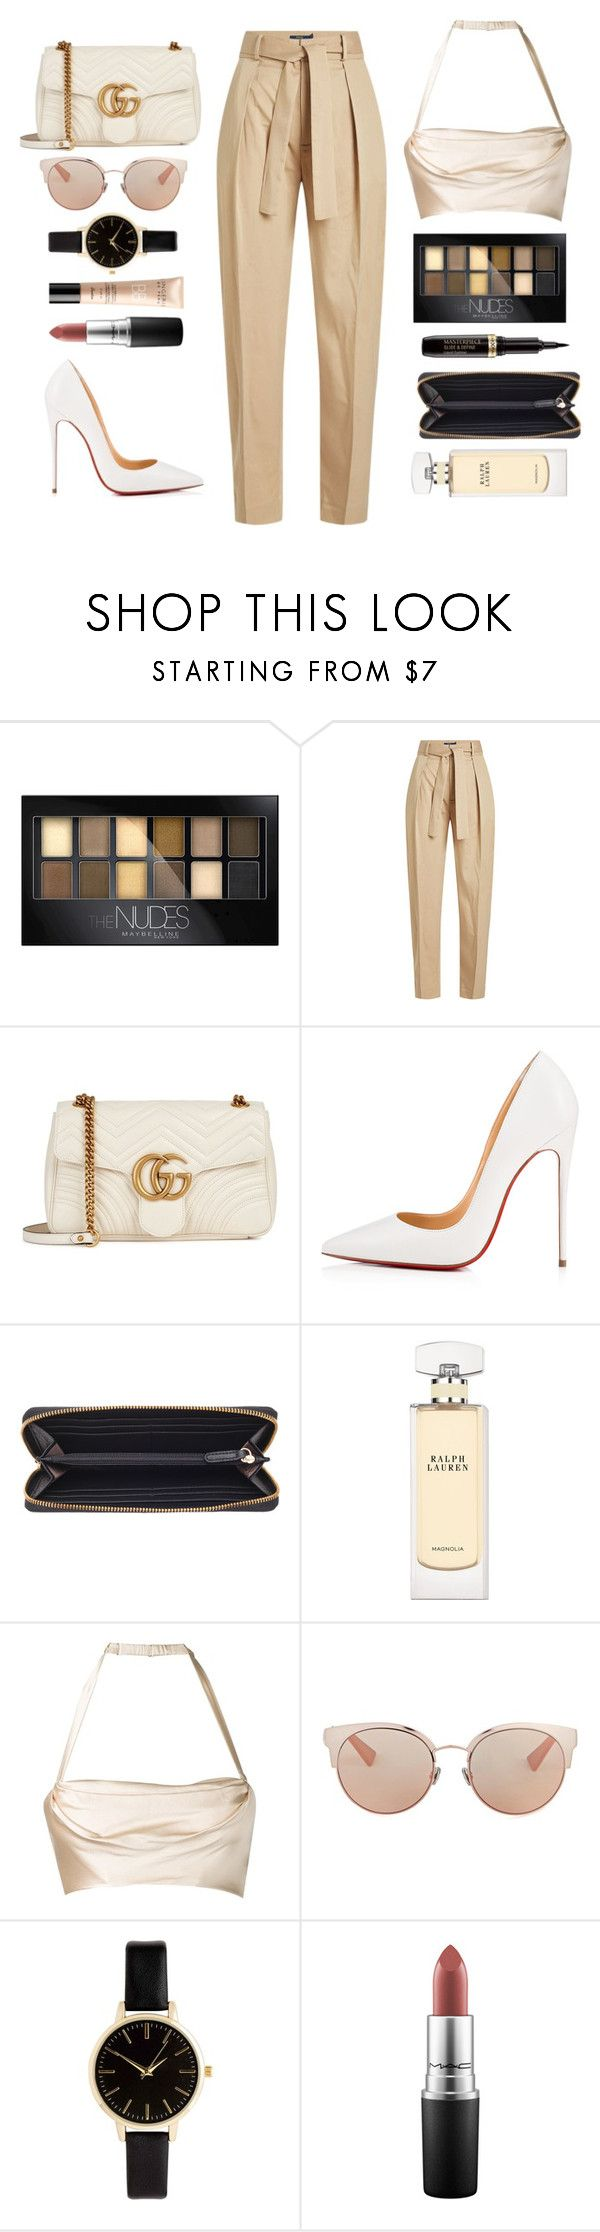 @capri by melanie-pacheco on Polyvore featuring moda, Dolci Follie, Polo Ralph Lauren, Christian Louboutin, Gucci, Vince Camuto, Christian Dior, Guerlain, MAC Cosmetics and Maybelline